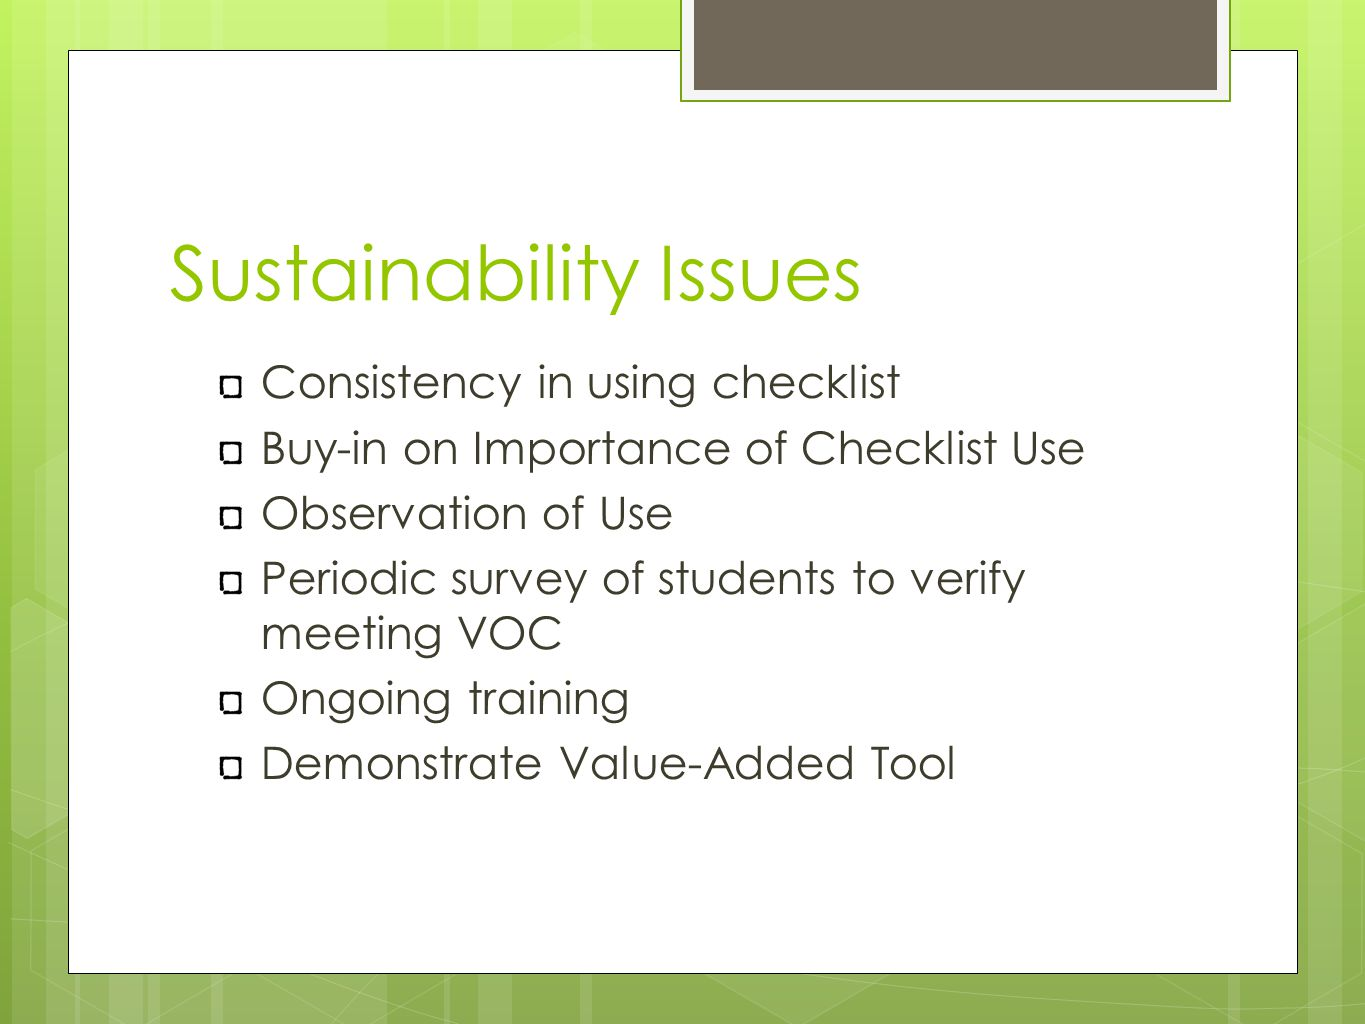 Sustainability Issues Consistency in using checklist Buy-in on Importance of Checklist Use Observation of Use Periodic survey of students to verify meeting VOC Ongoing training Demonstrate Value-Added Tool